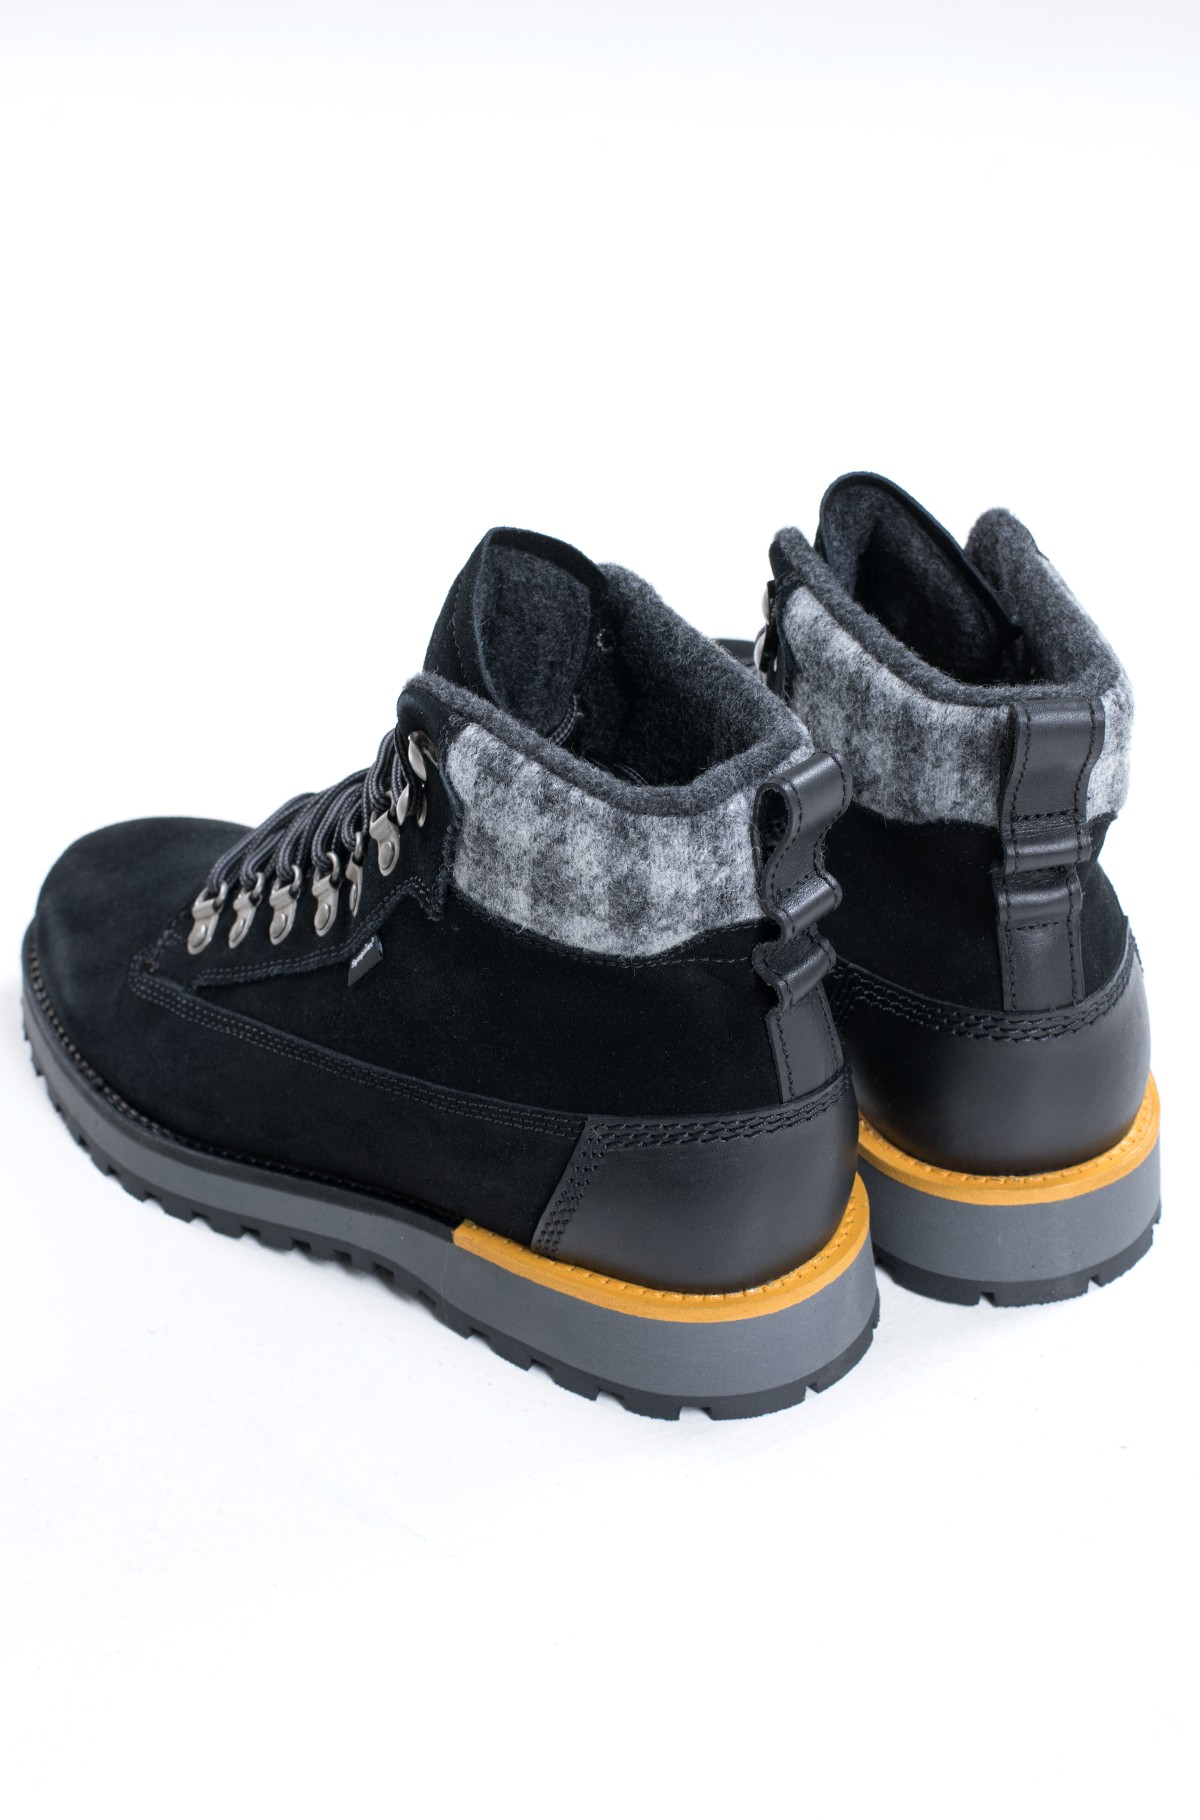 Boots FASHION MIX SNEAKER-full-4